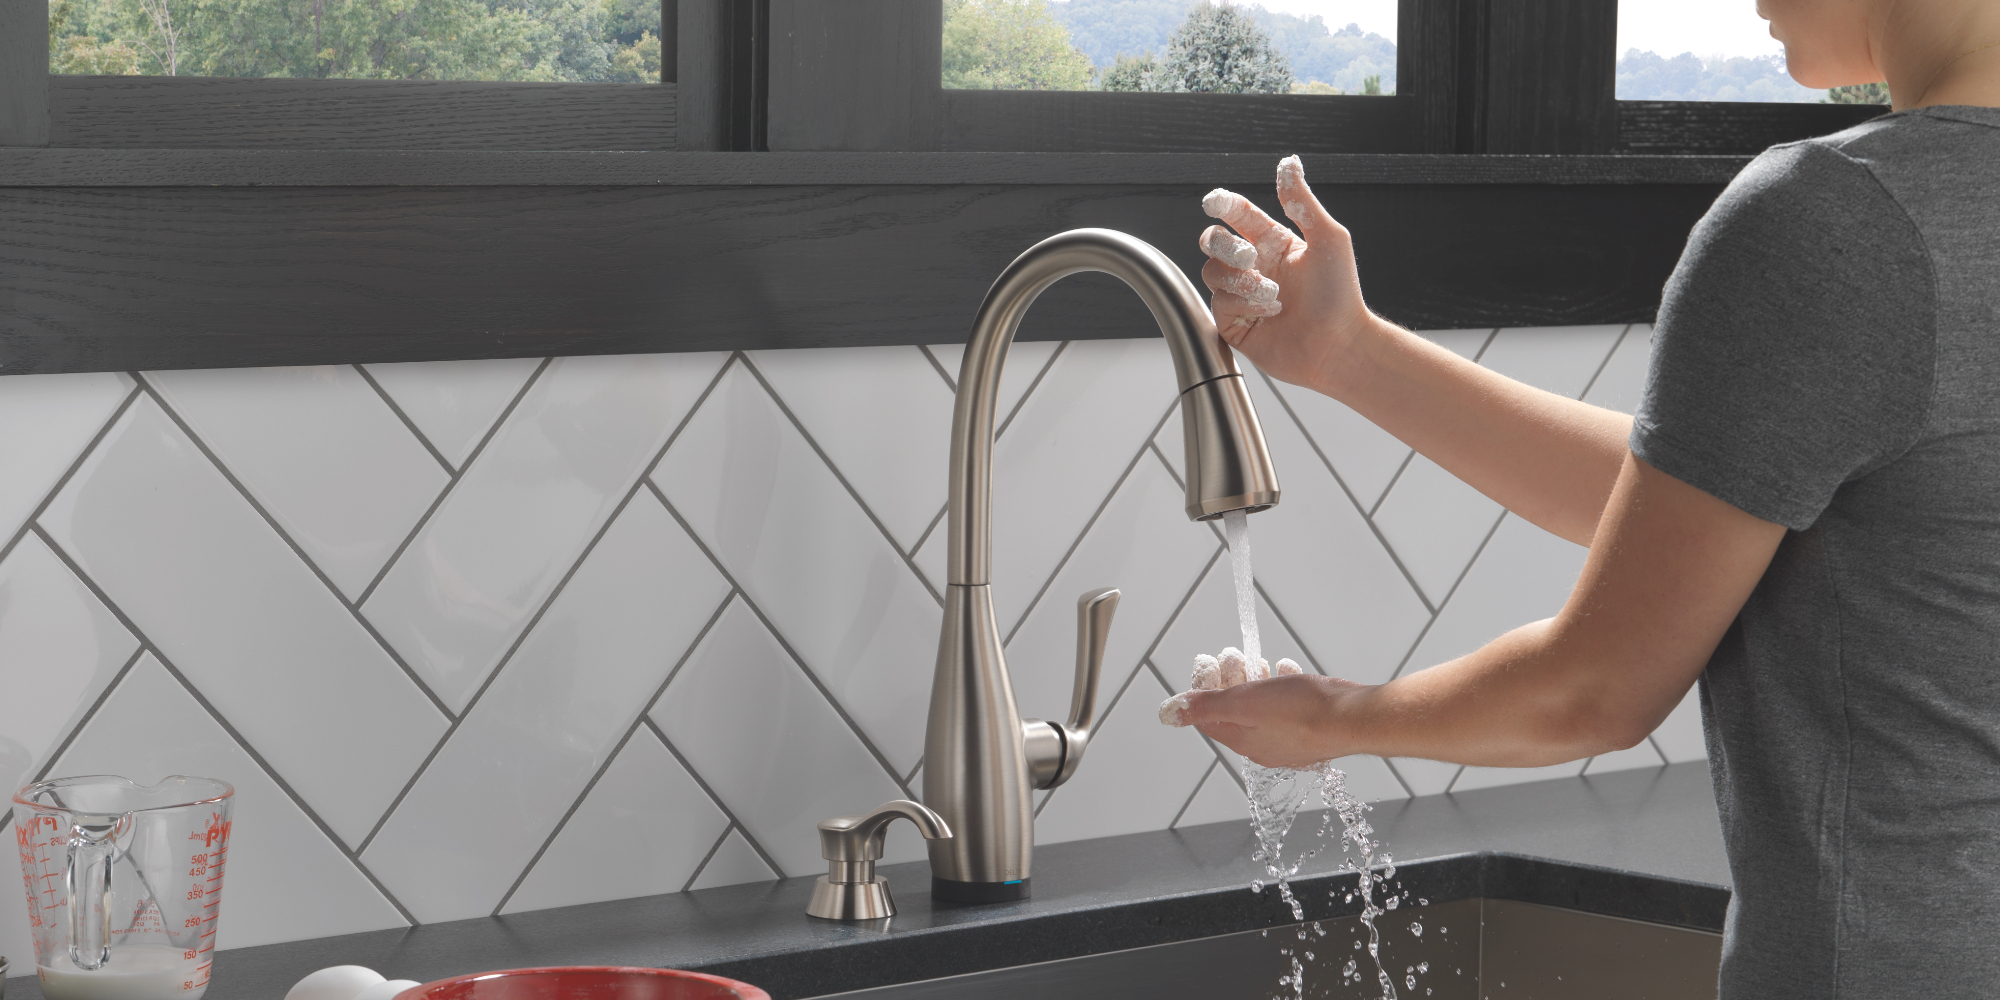 making hygienic faucet and sink choices